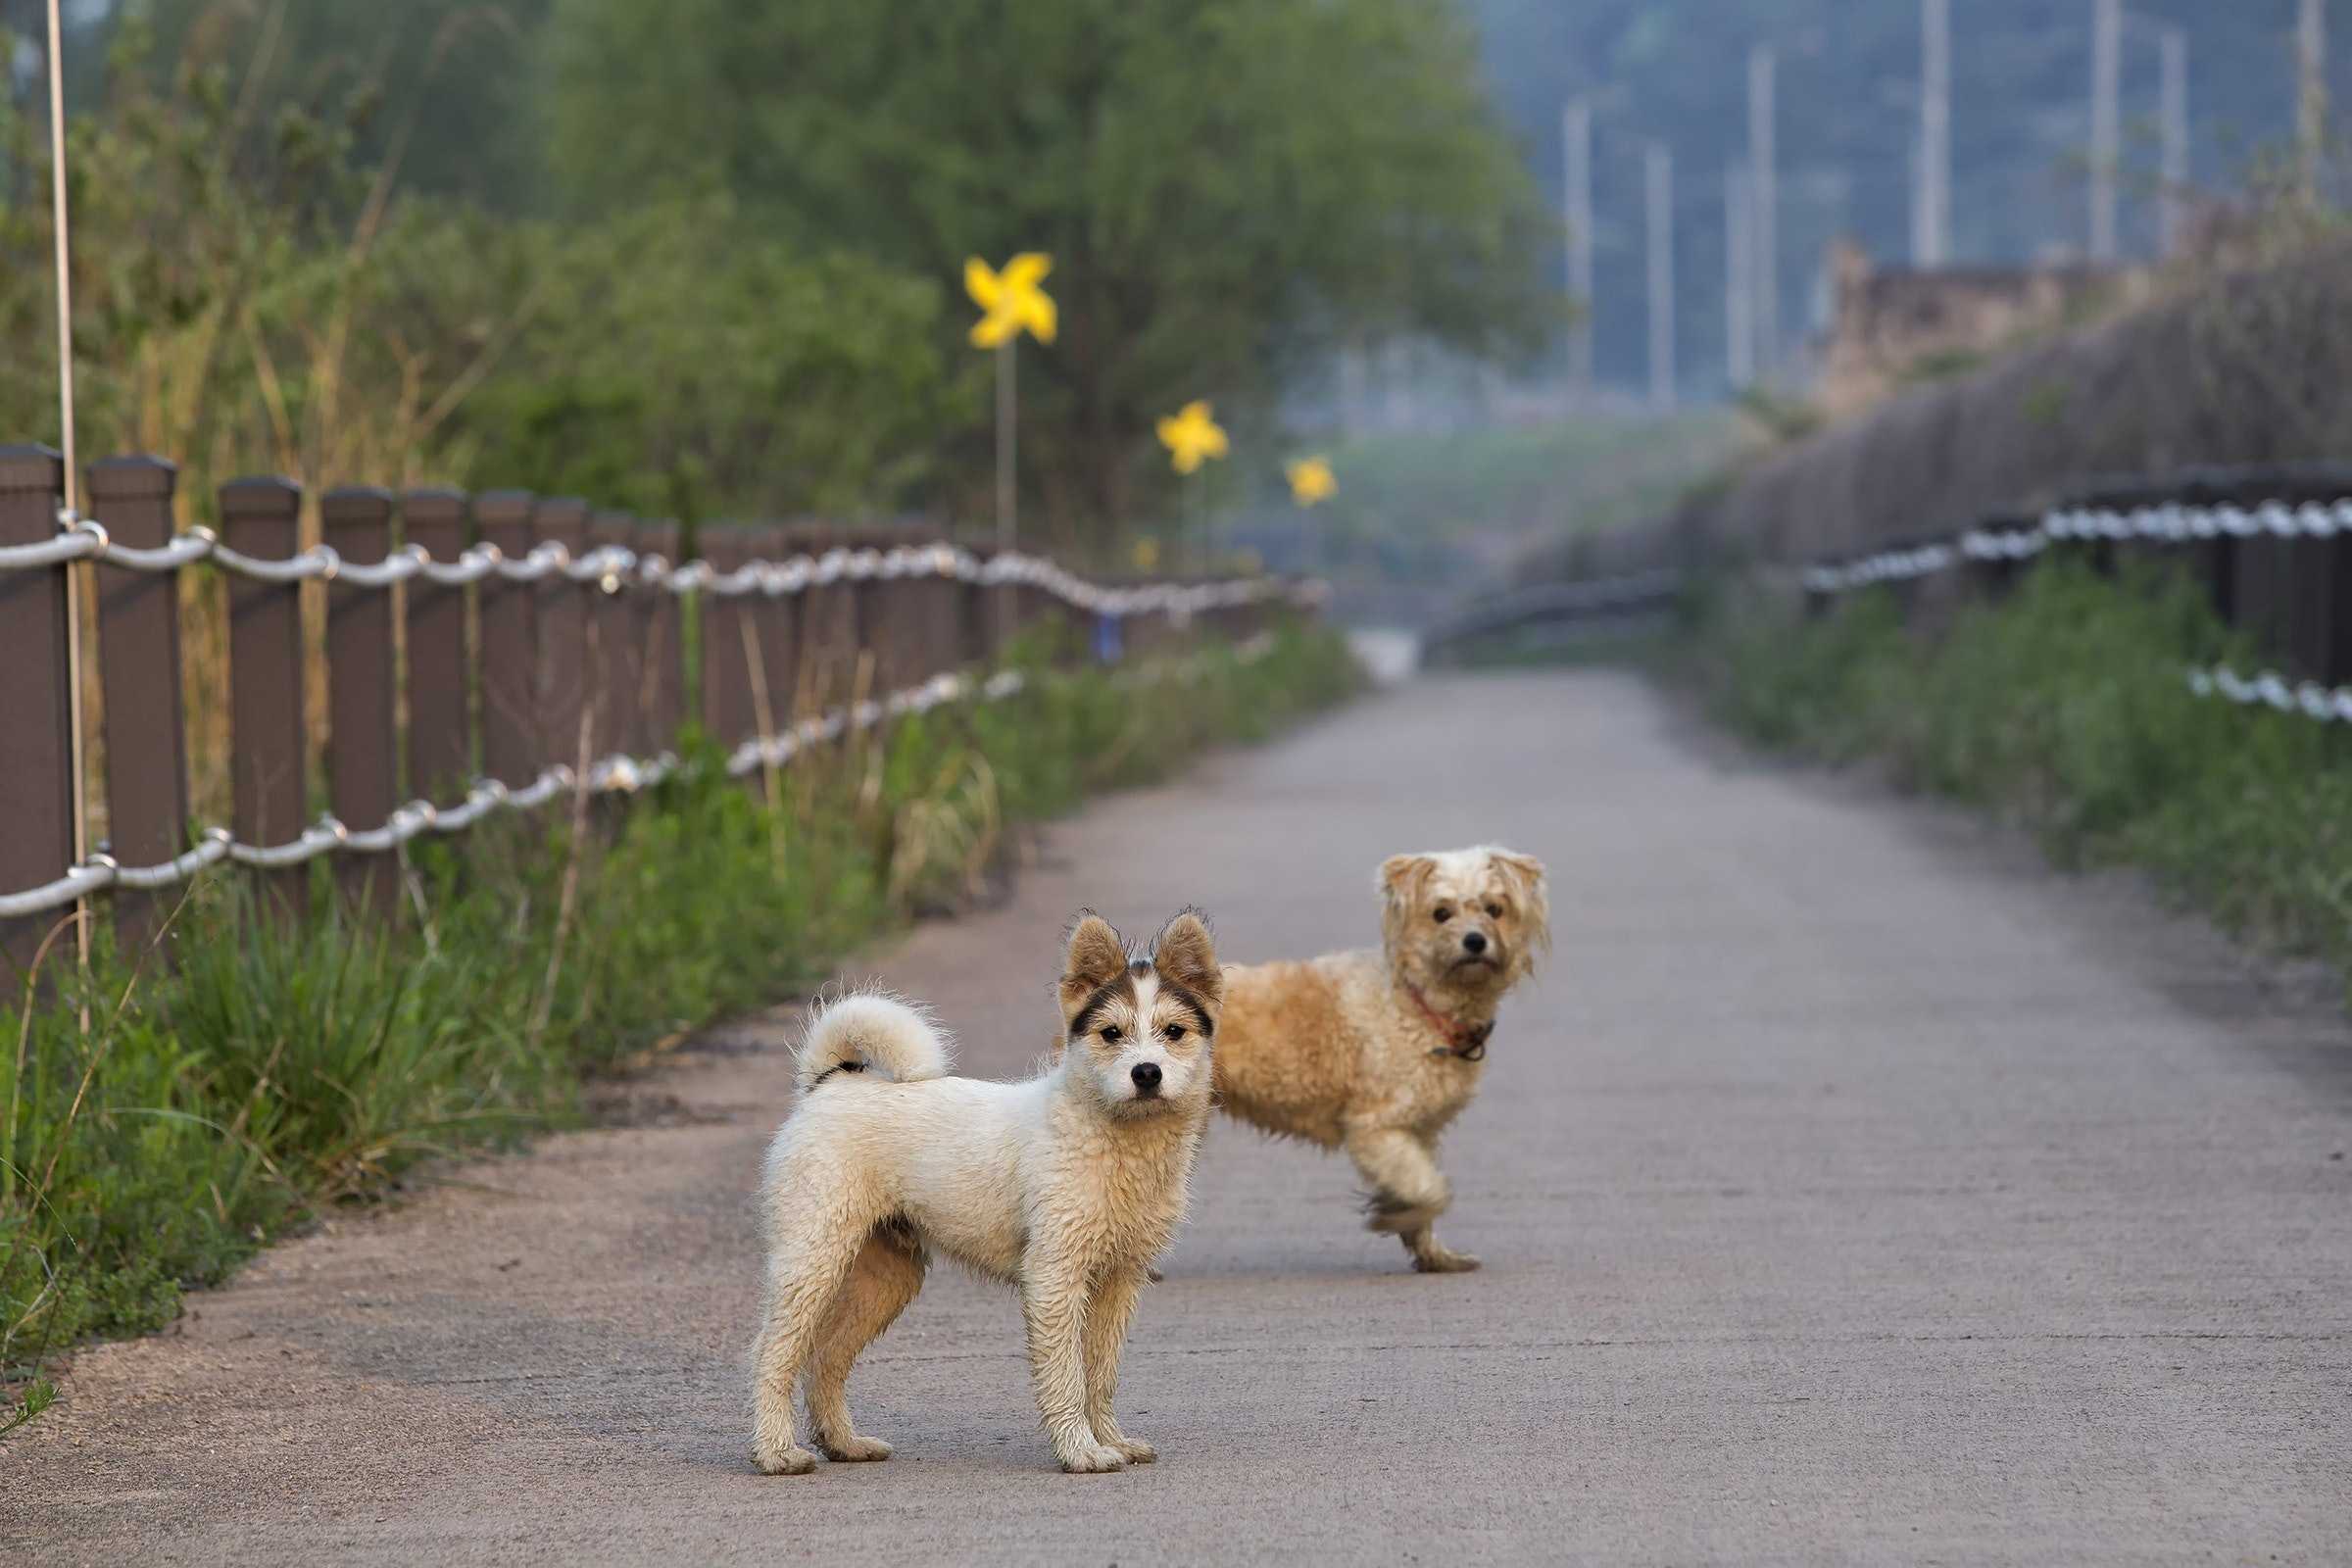 animals-canine-couple-416204